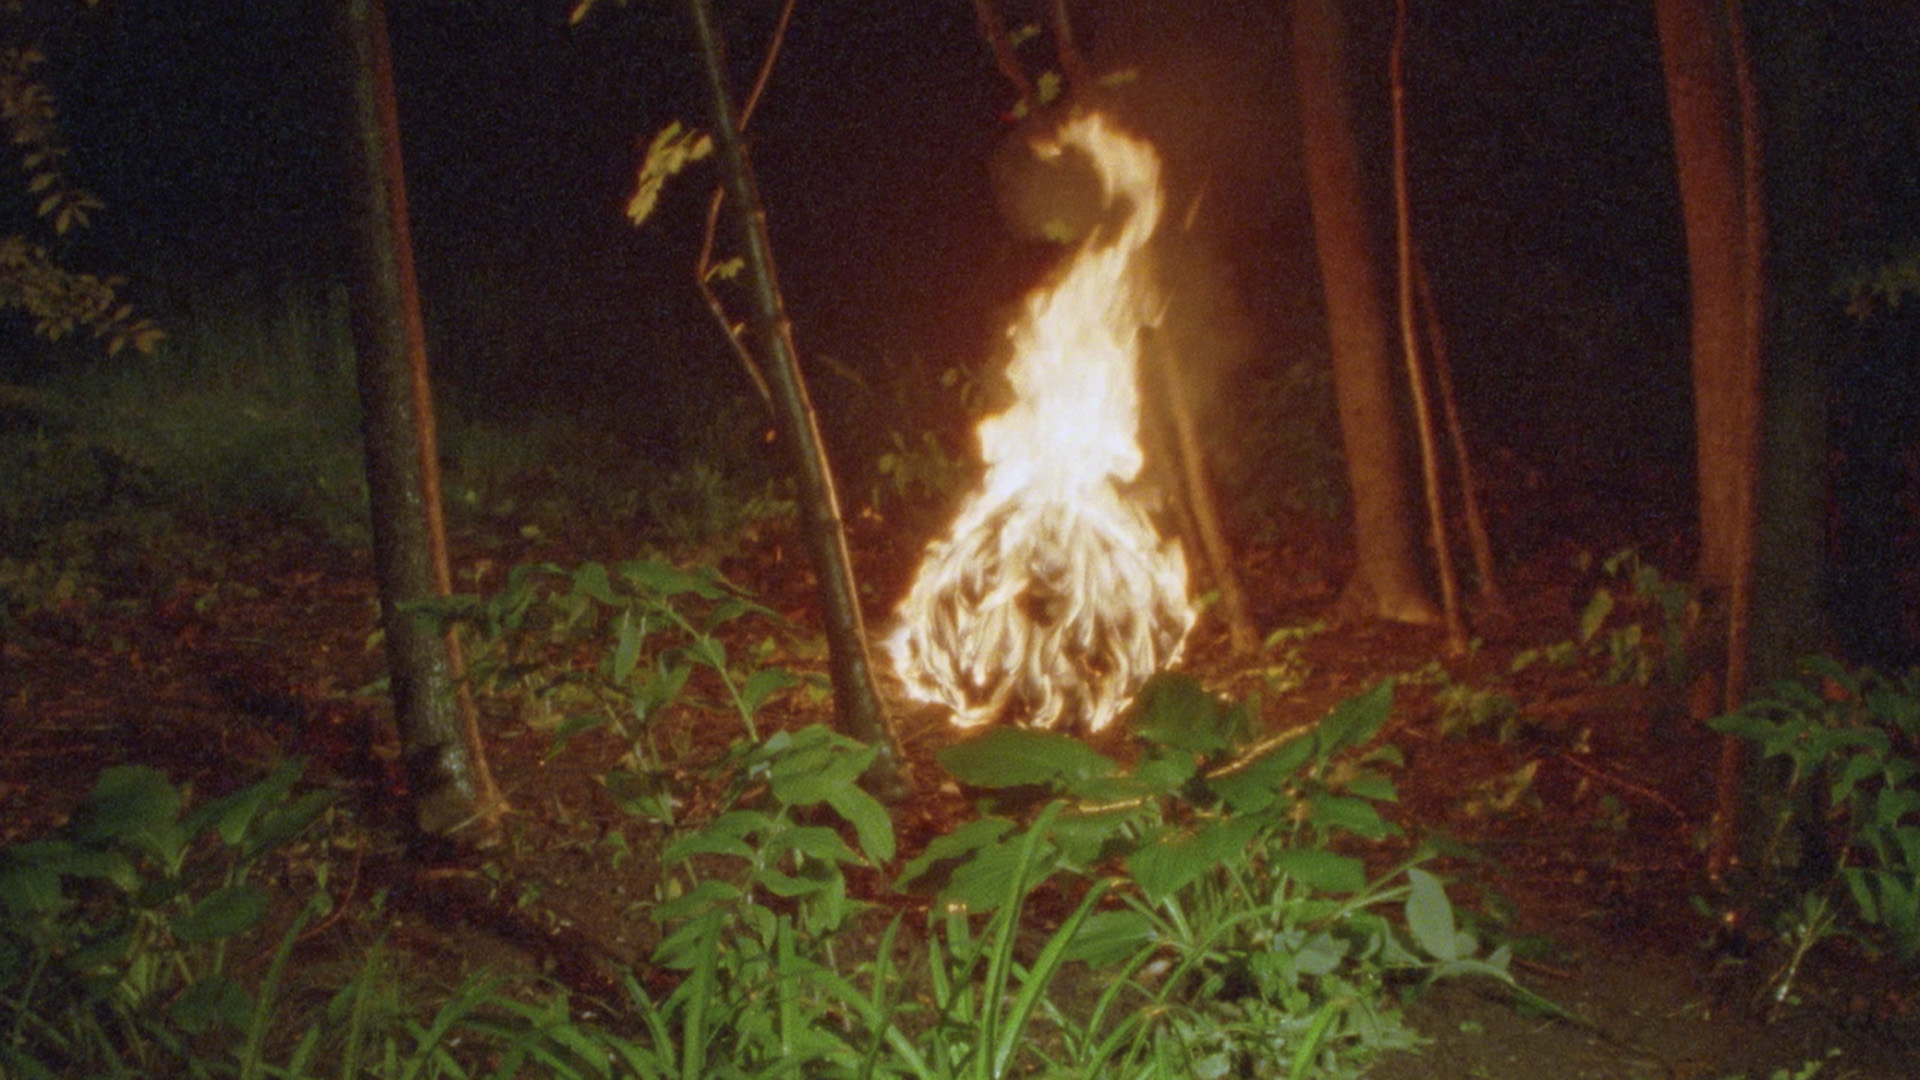 Ball of fire in a forest at night in still from Terror Has No Shape (2020) by Luis Arnias